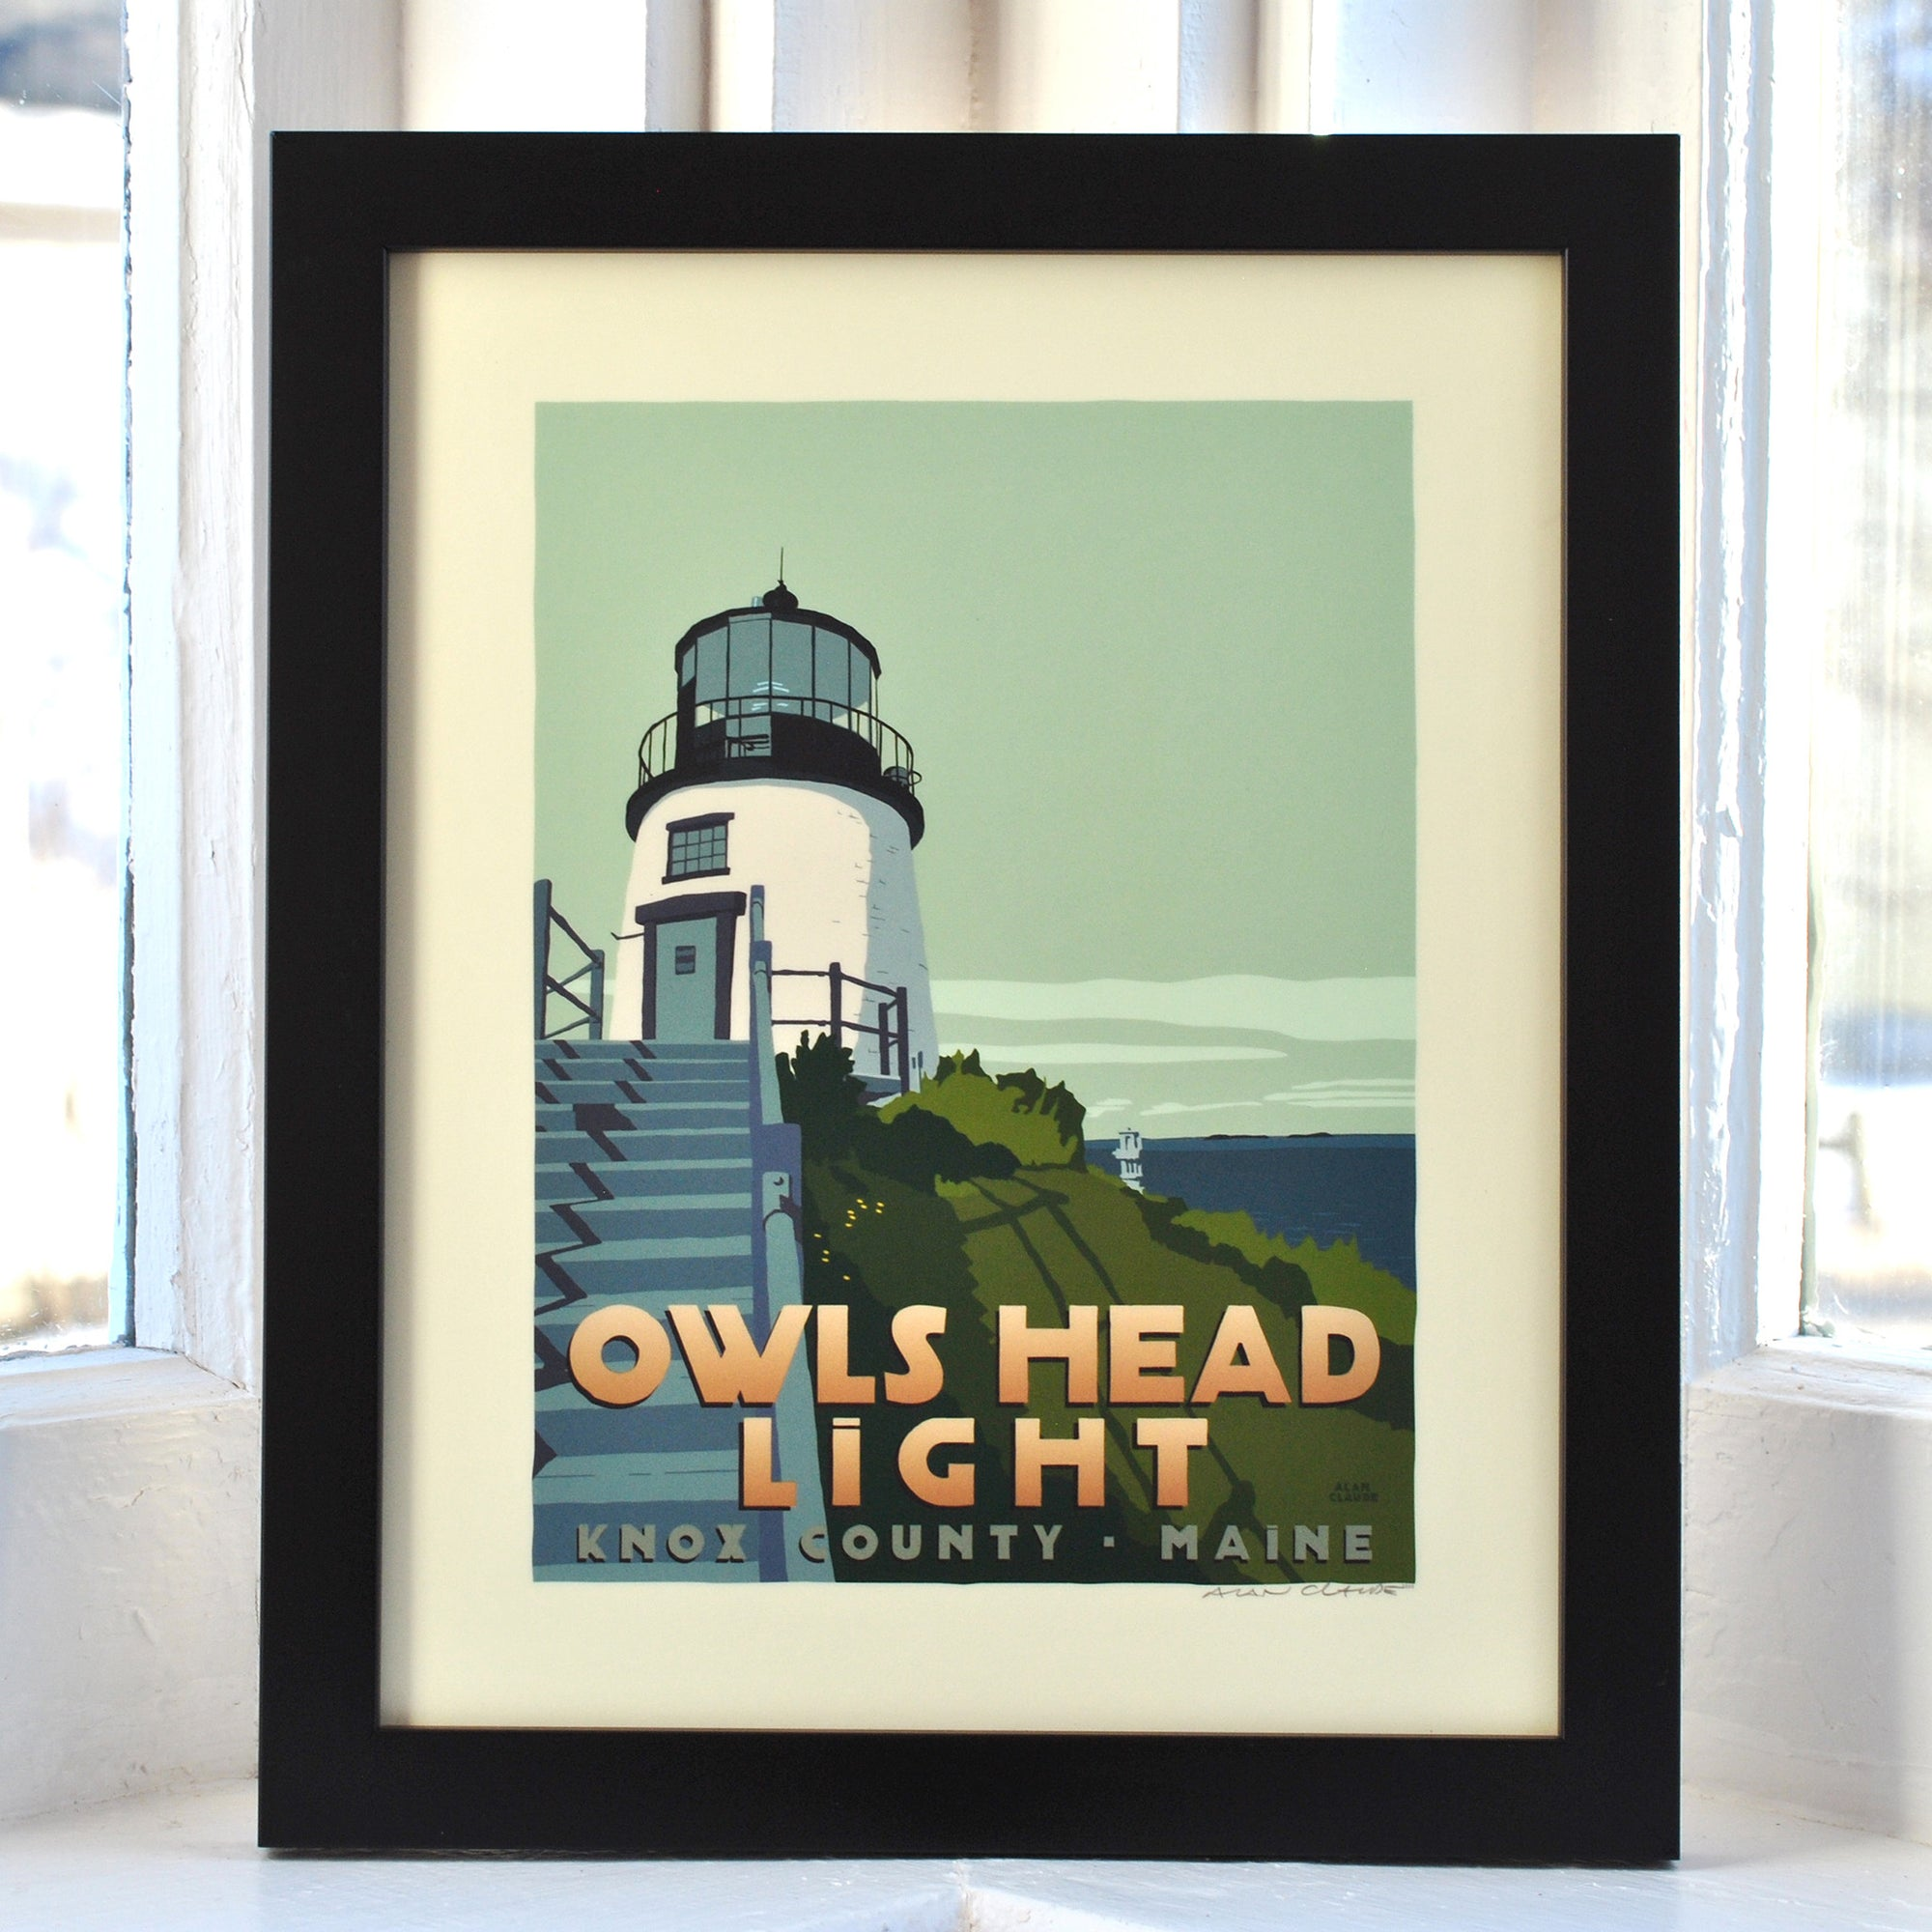 "Owls Head Light Art Print 8"" x 10"" Framed Travel Poster - Maine"